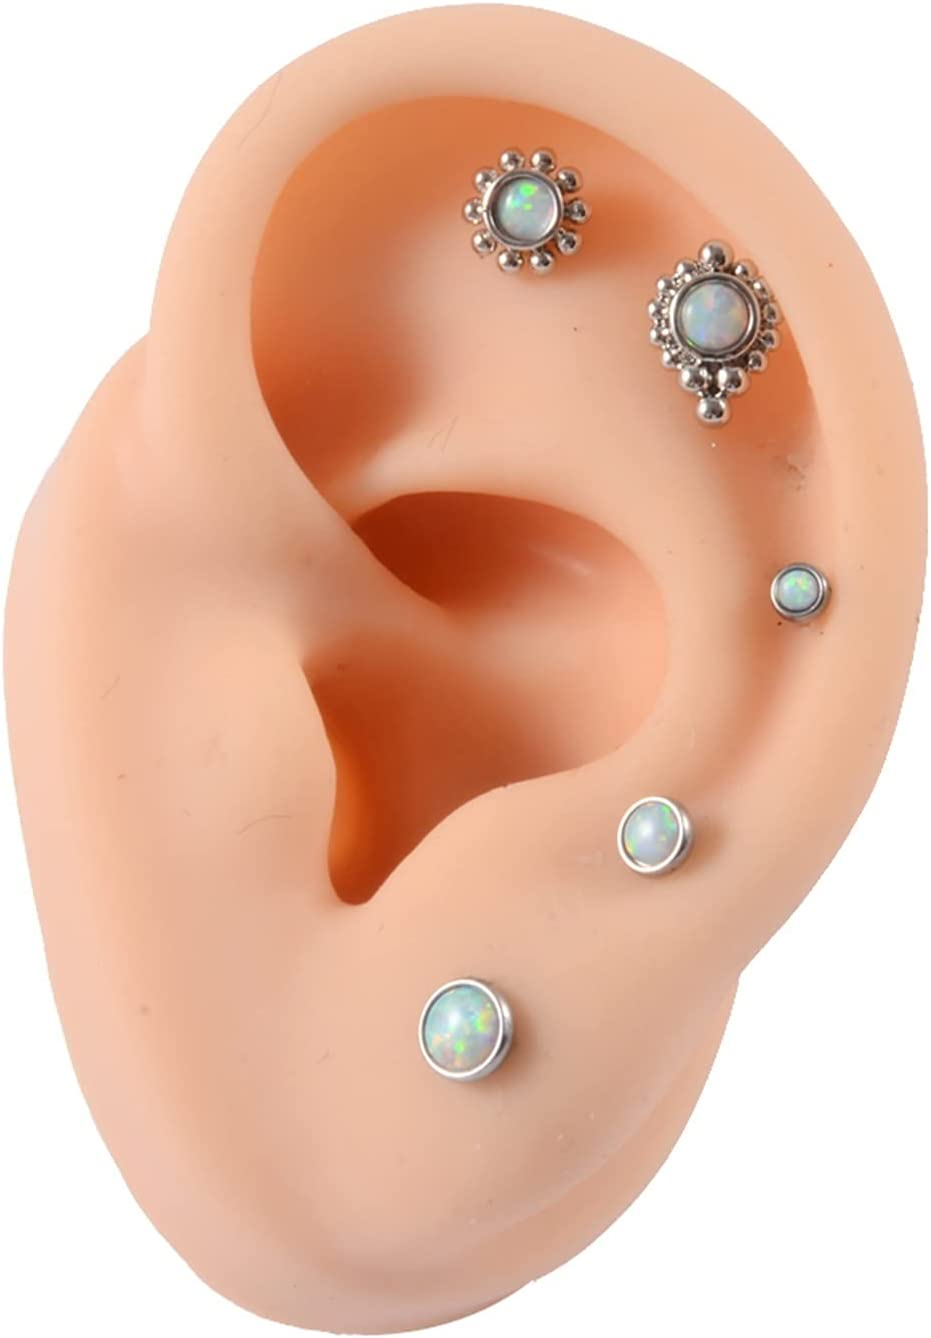 ZYQXB 1 Set of 16G Nose Ring Cluster Ear Tragus Earrings (Metal Color : Pure Gold Color)